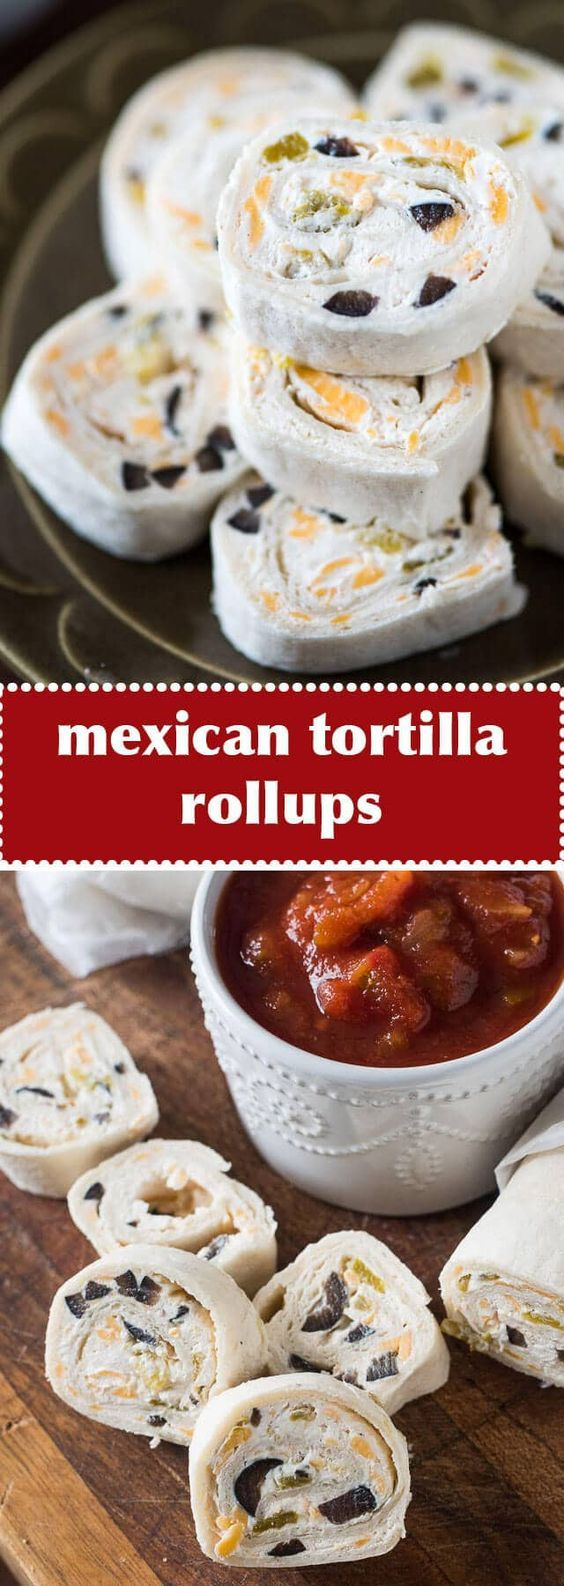 These bite-size Mexican Tortilla Rollups are an easy appetizer to share at a party. Roll up, refrigerate, slice and serve with salsa! #appetizer #pinwheels #rollups #mexican via @tastesoflizzyt